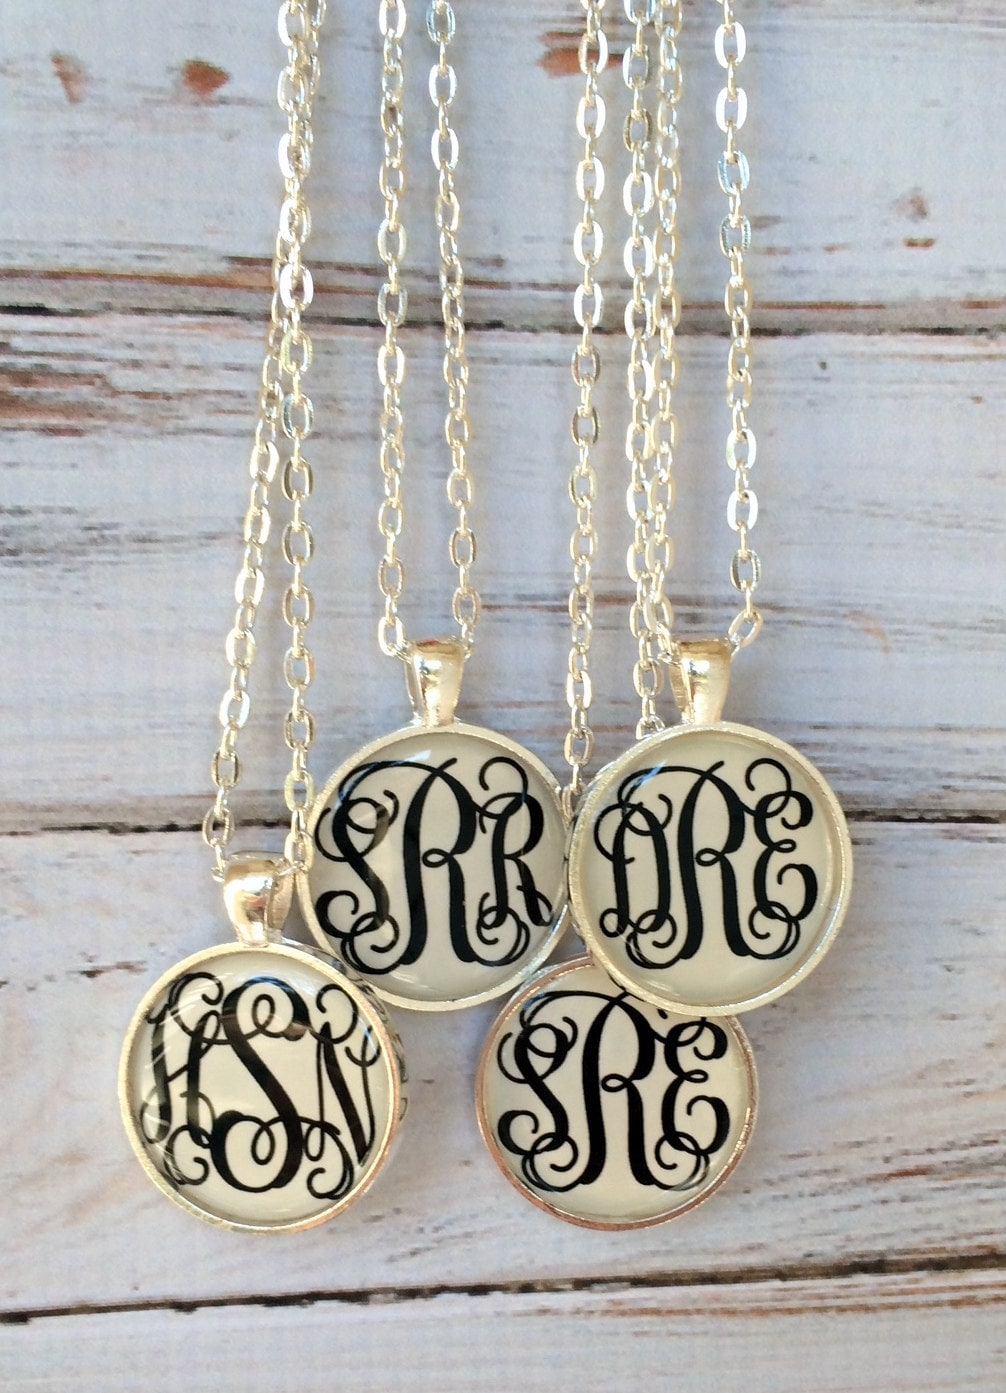 State Monogram Bridesmaid Gallery Photo Galleryphoto Silver Monogram Monogrammed Bridesmaid Gifts Cheap Wedding Gifts That Look Expensive Cheap Bridesmaid Gifts Under 10 gifts Cheap Bridesmaid Gifts